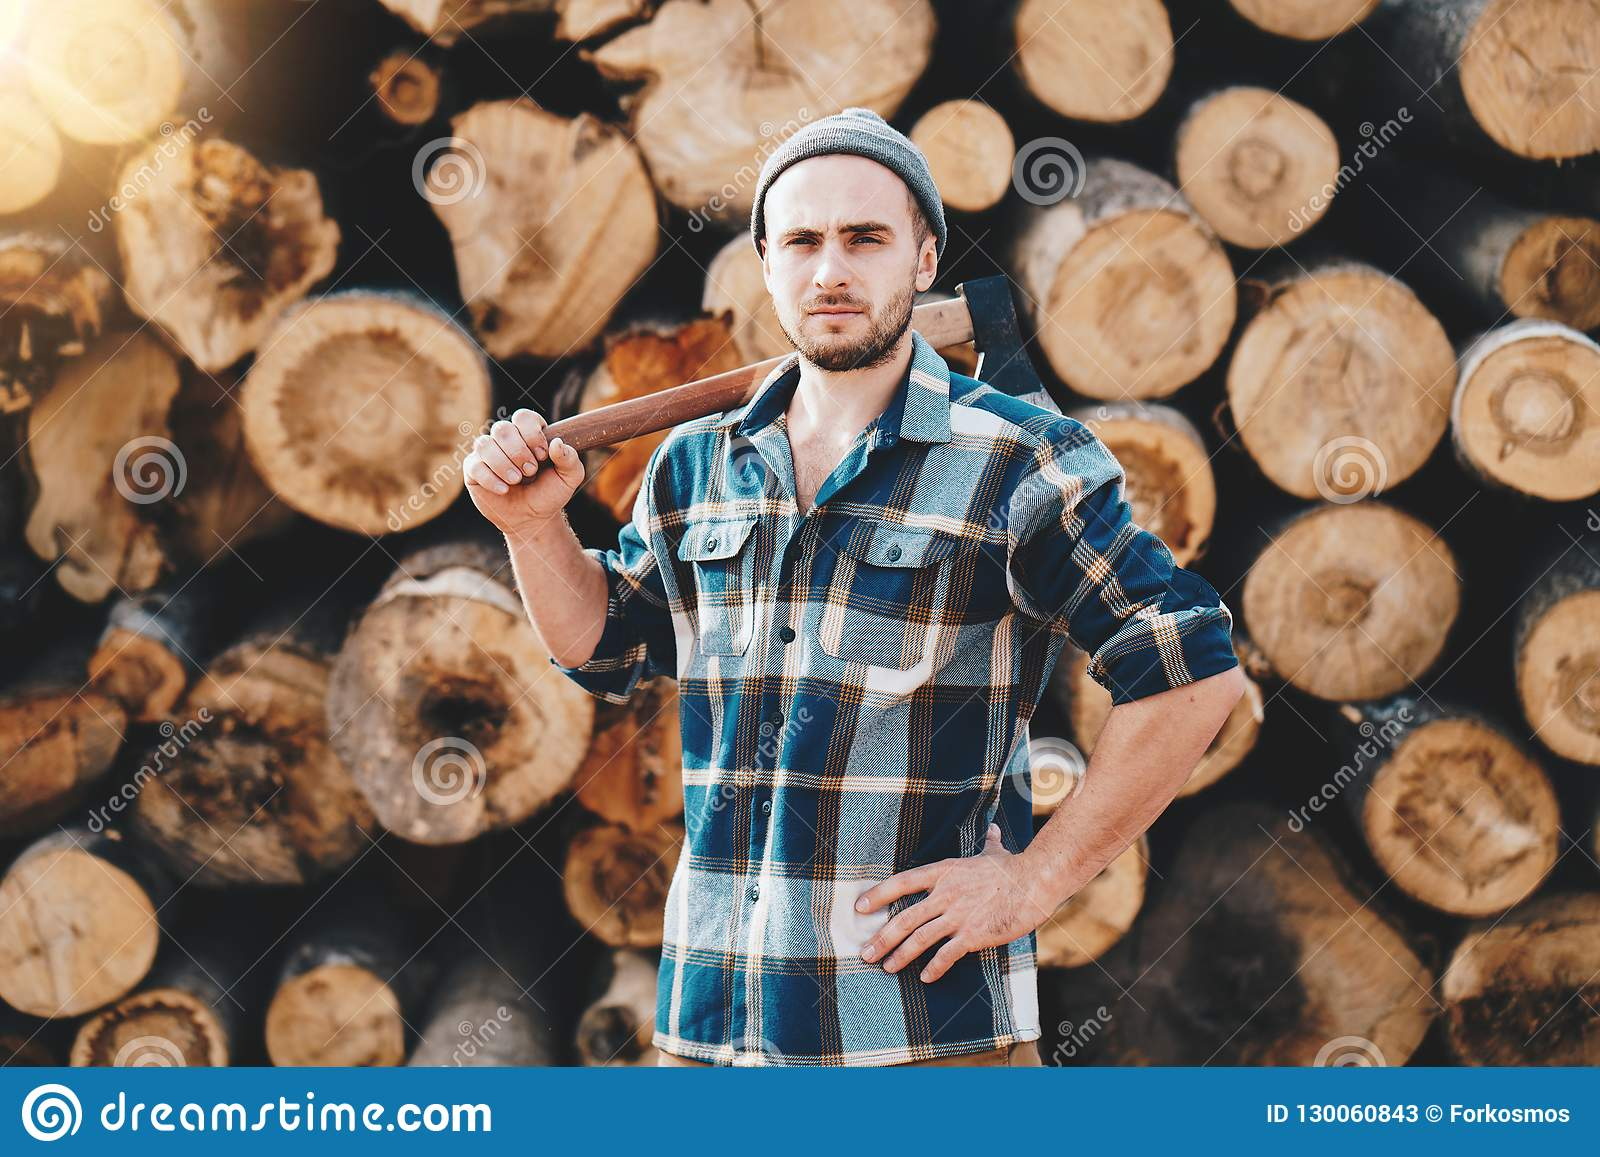 Strong bearded lumberman wearing plaid shirt holds axe on his shoulder